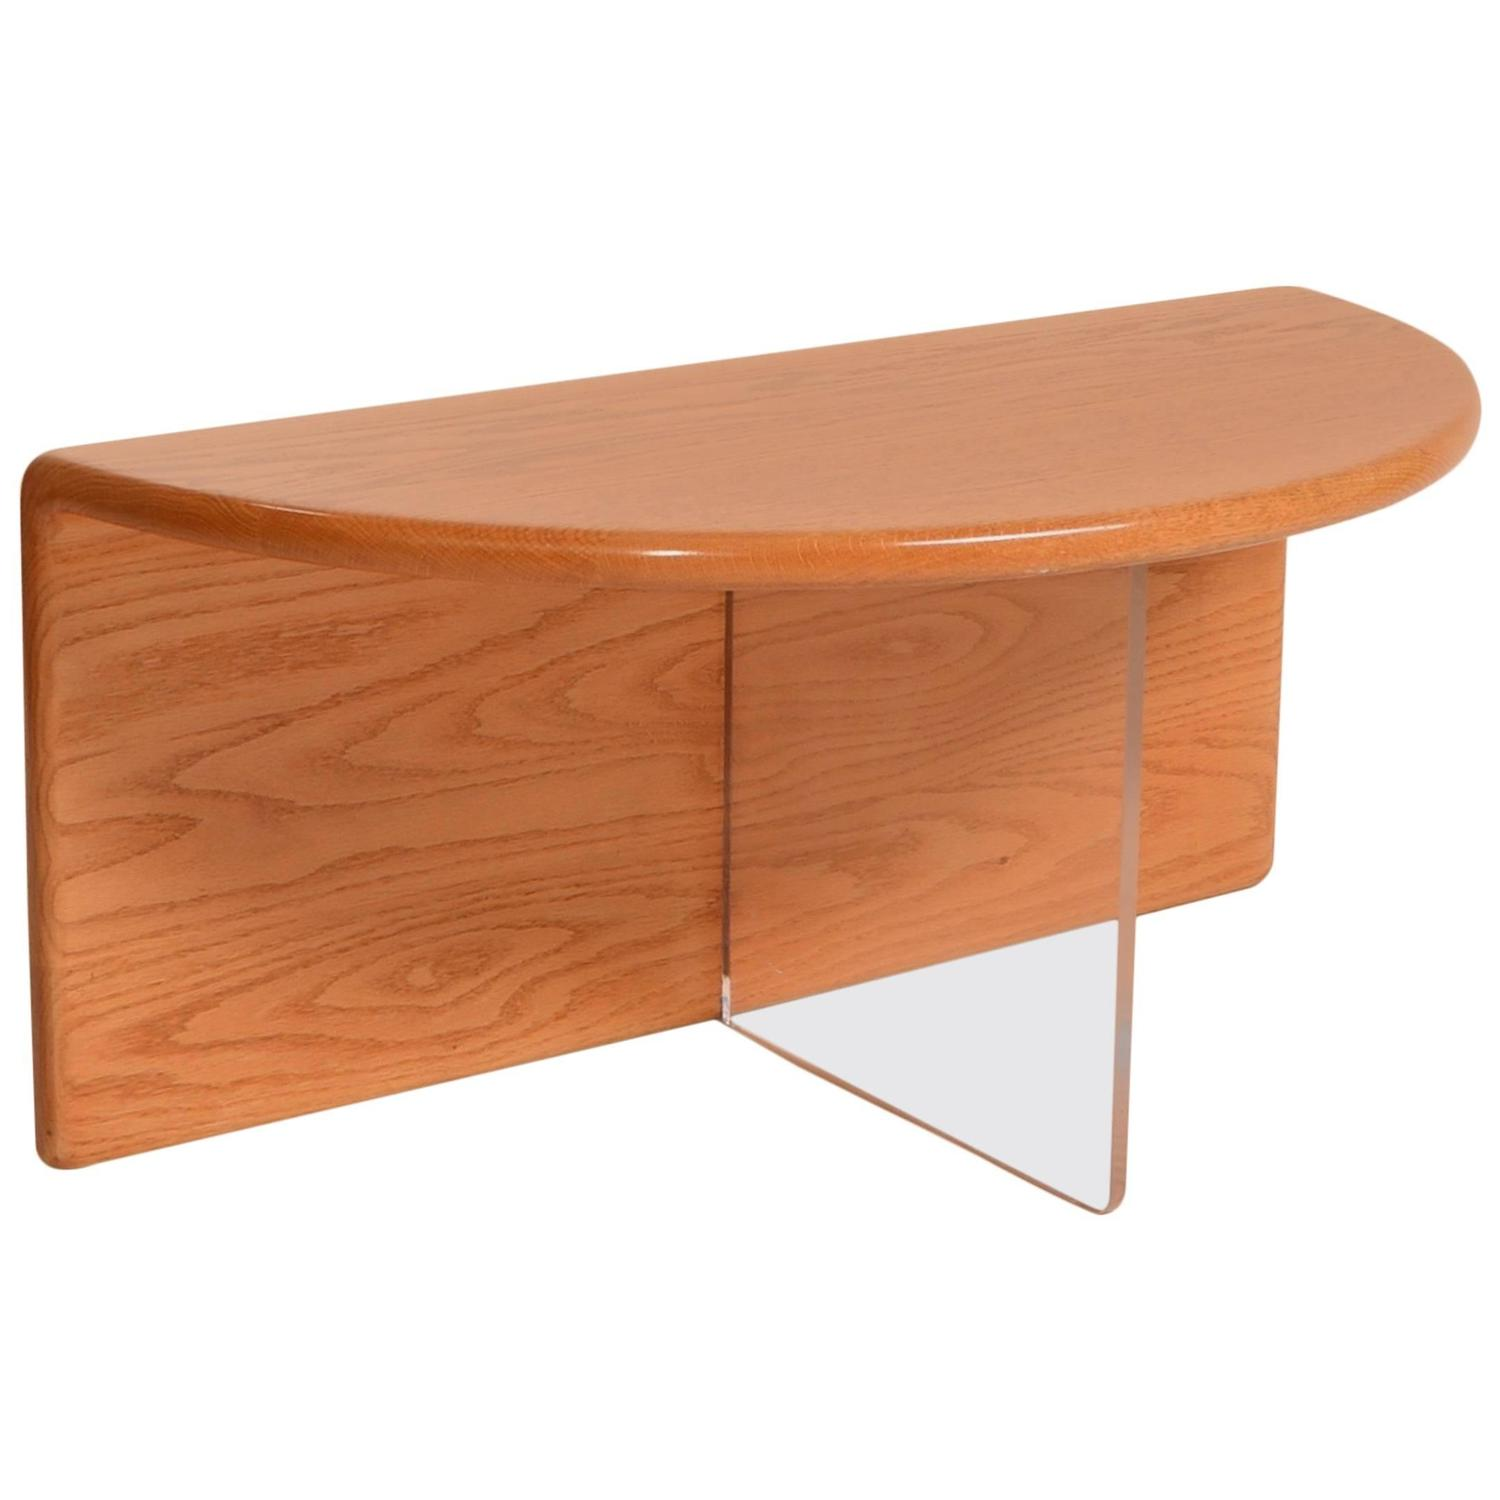 Gerald mccabe oak and lucite coffee table for sale at 1stdibs for Acrylic coffee tables for sale